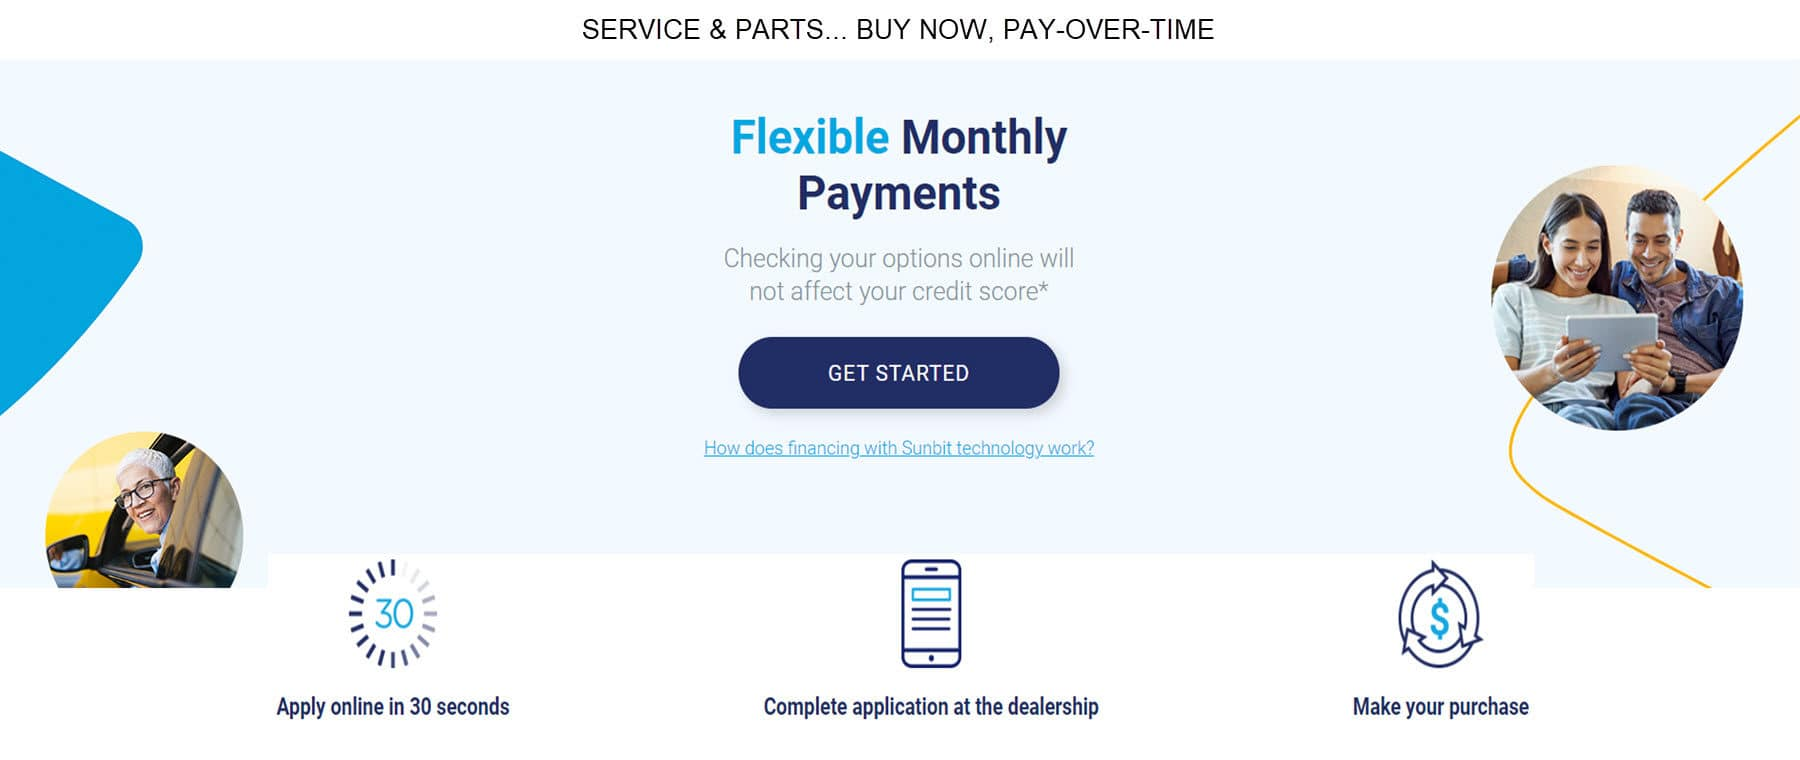 service-and-parts-buy-noy-pay-over-time-shakopee-chevrolet